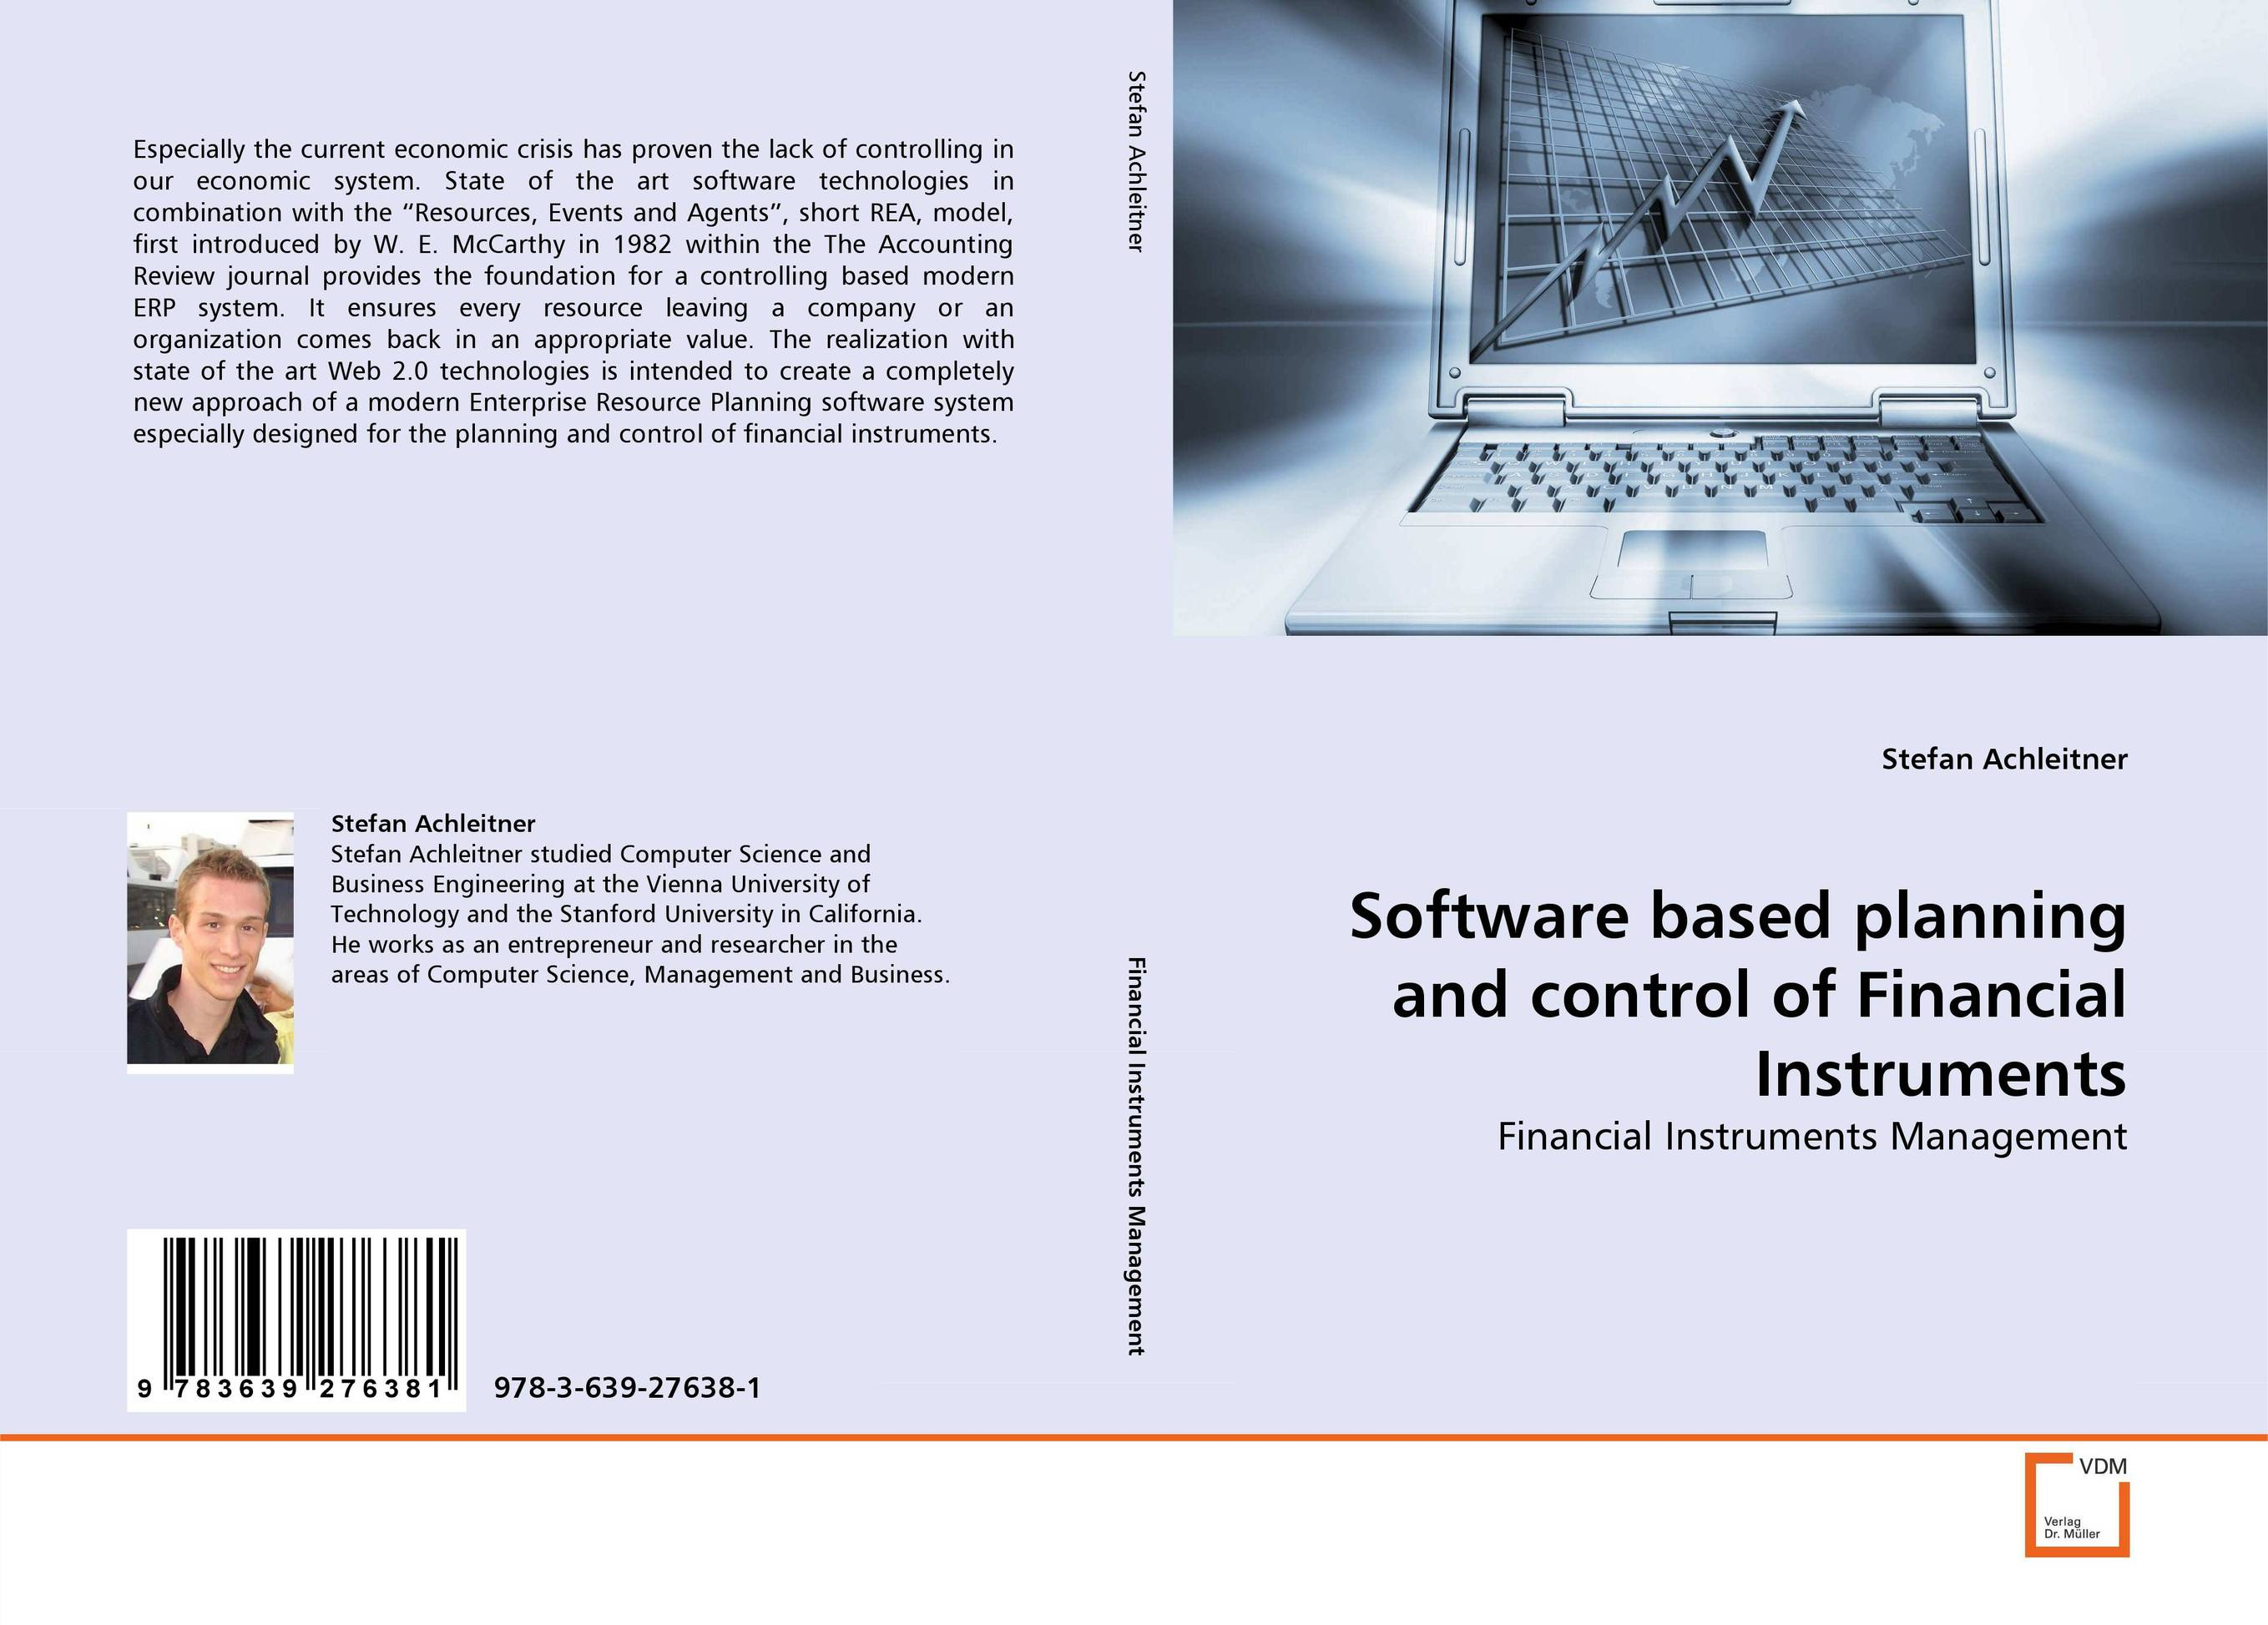 Software based planning and control of Financial Instruments